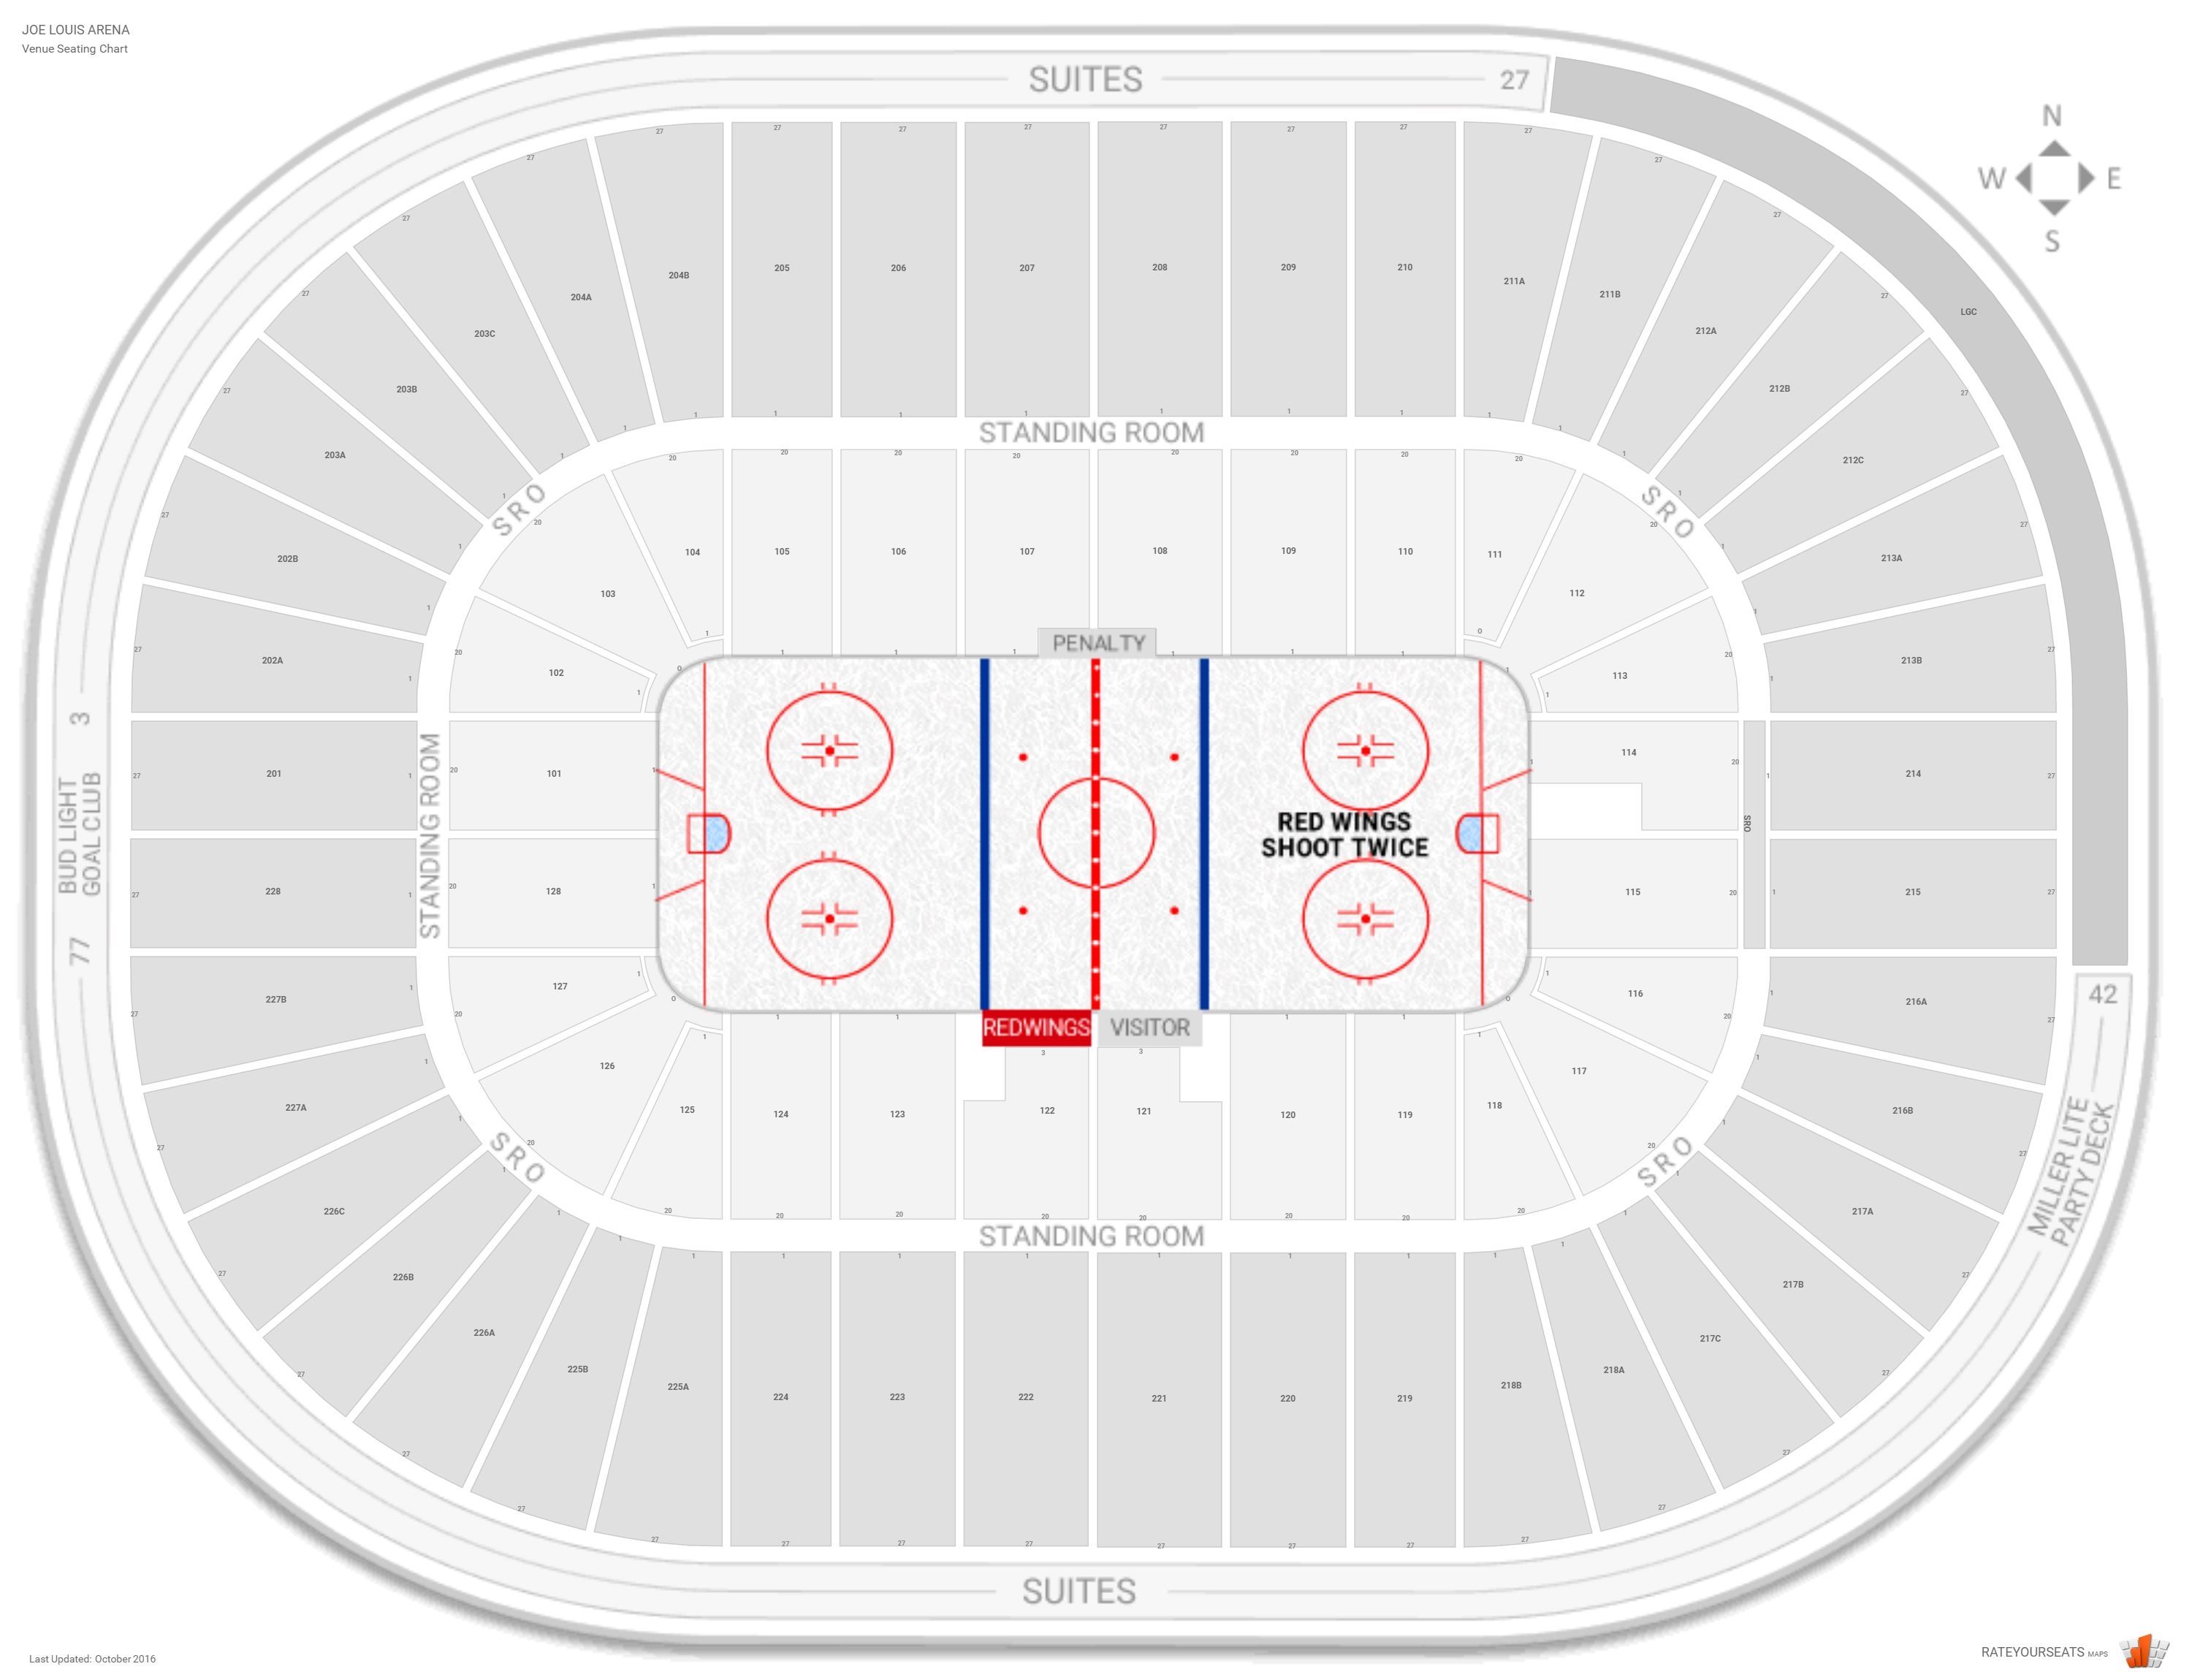 Joe Louis Arena Seat Map Joe Louis Arena Seating Guide   RateYourSeats.com Joe Louis Arena Seat Map